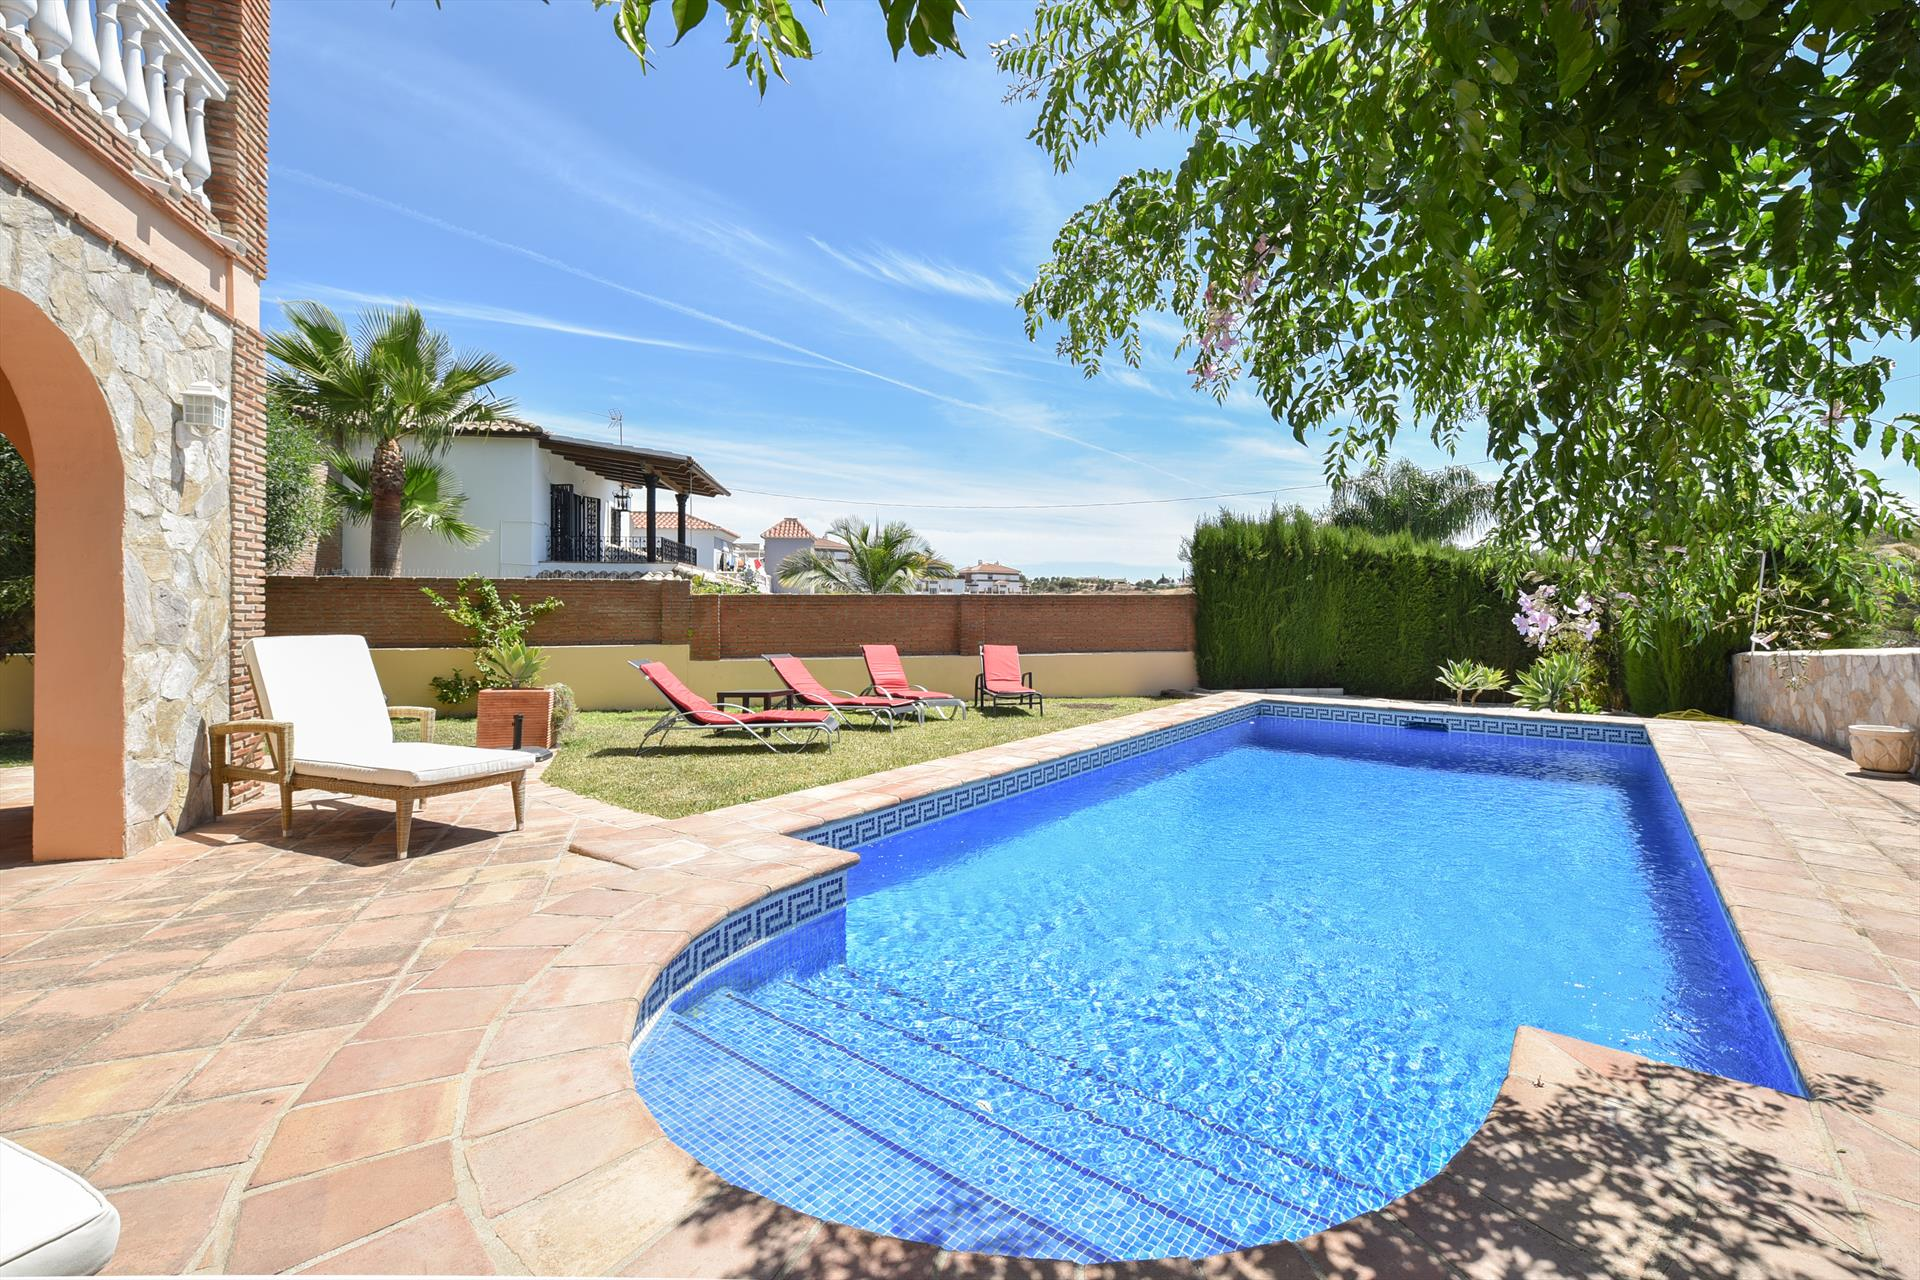 Casa Arroyo Real, Grosse und komfortable Villa  mit privatem Pool in Mijas costa, in Andalusien, Spanien für 10 Personen.....